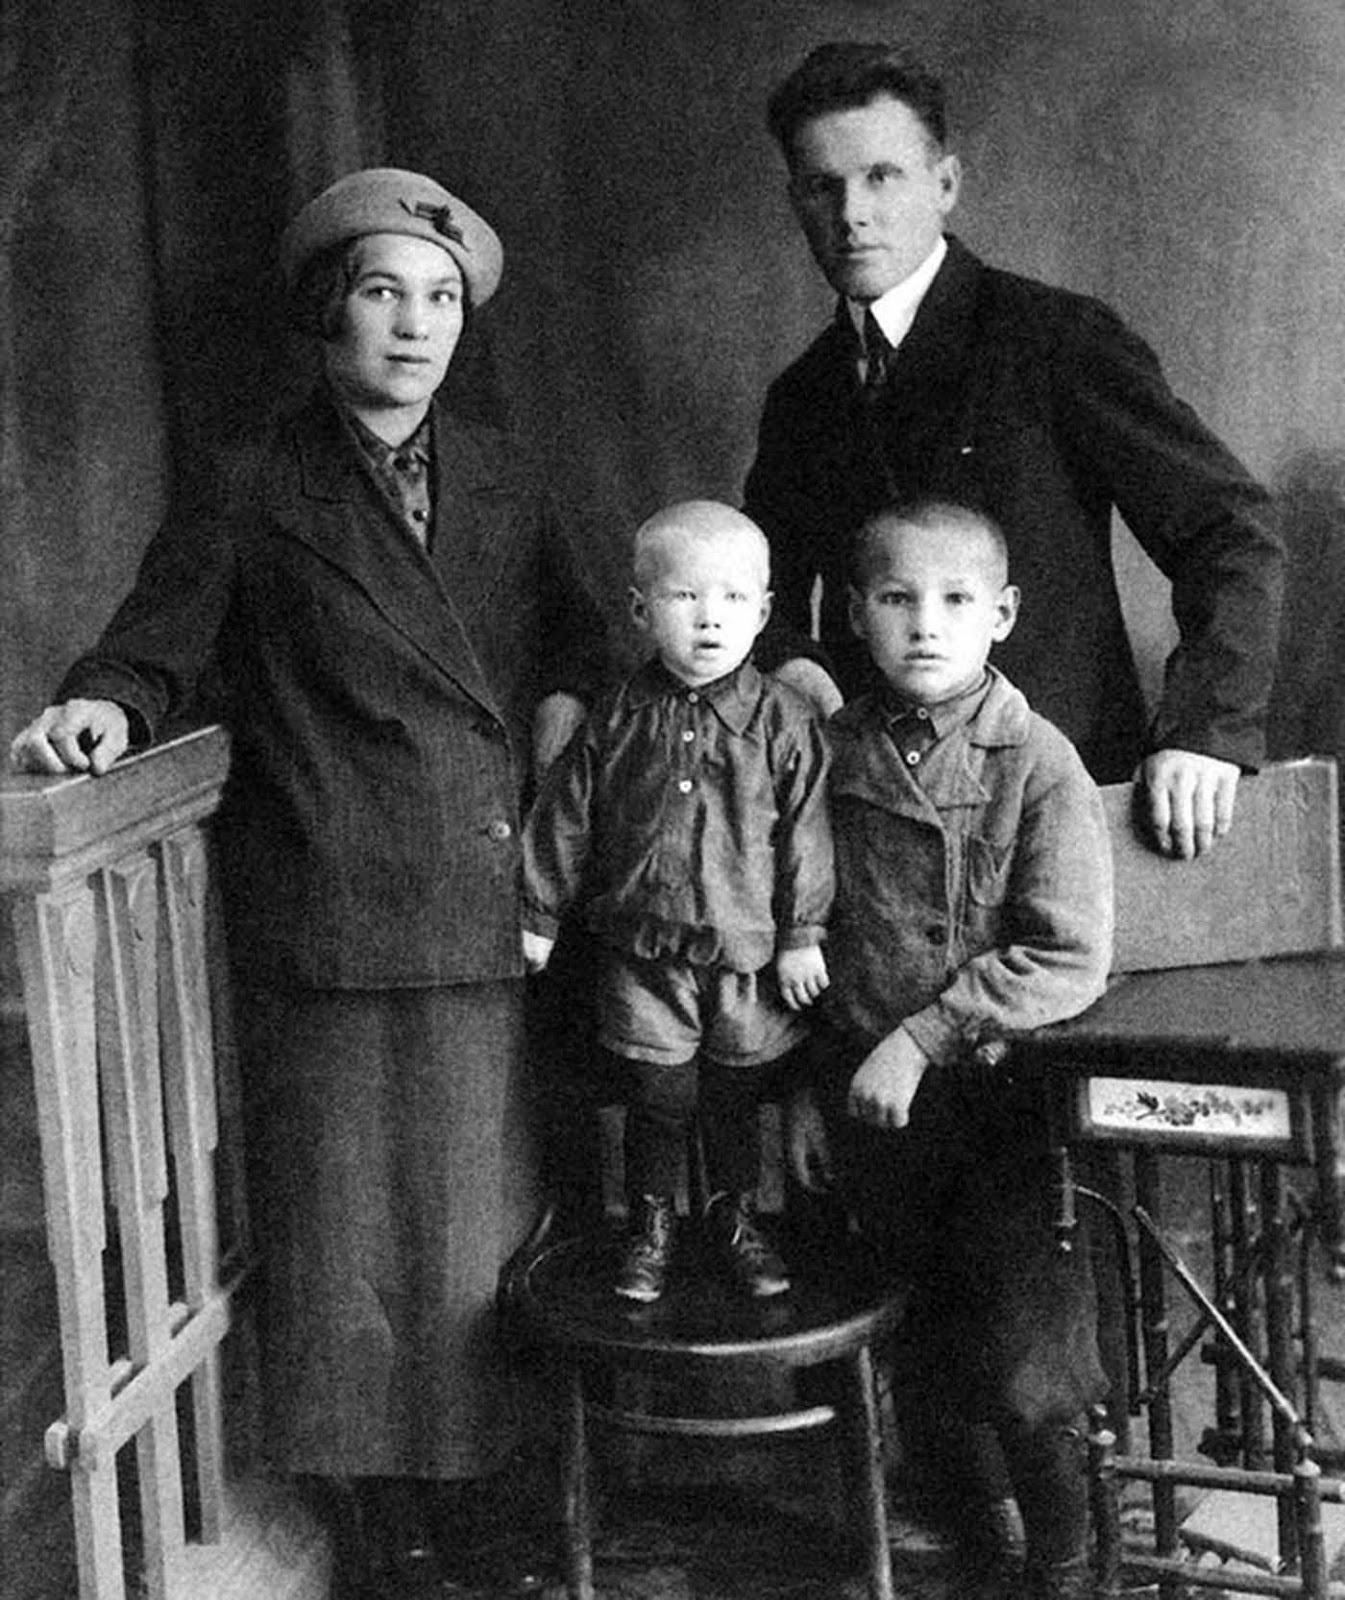 Family of Yeltsin, 1939. Boris together with his little brother.